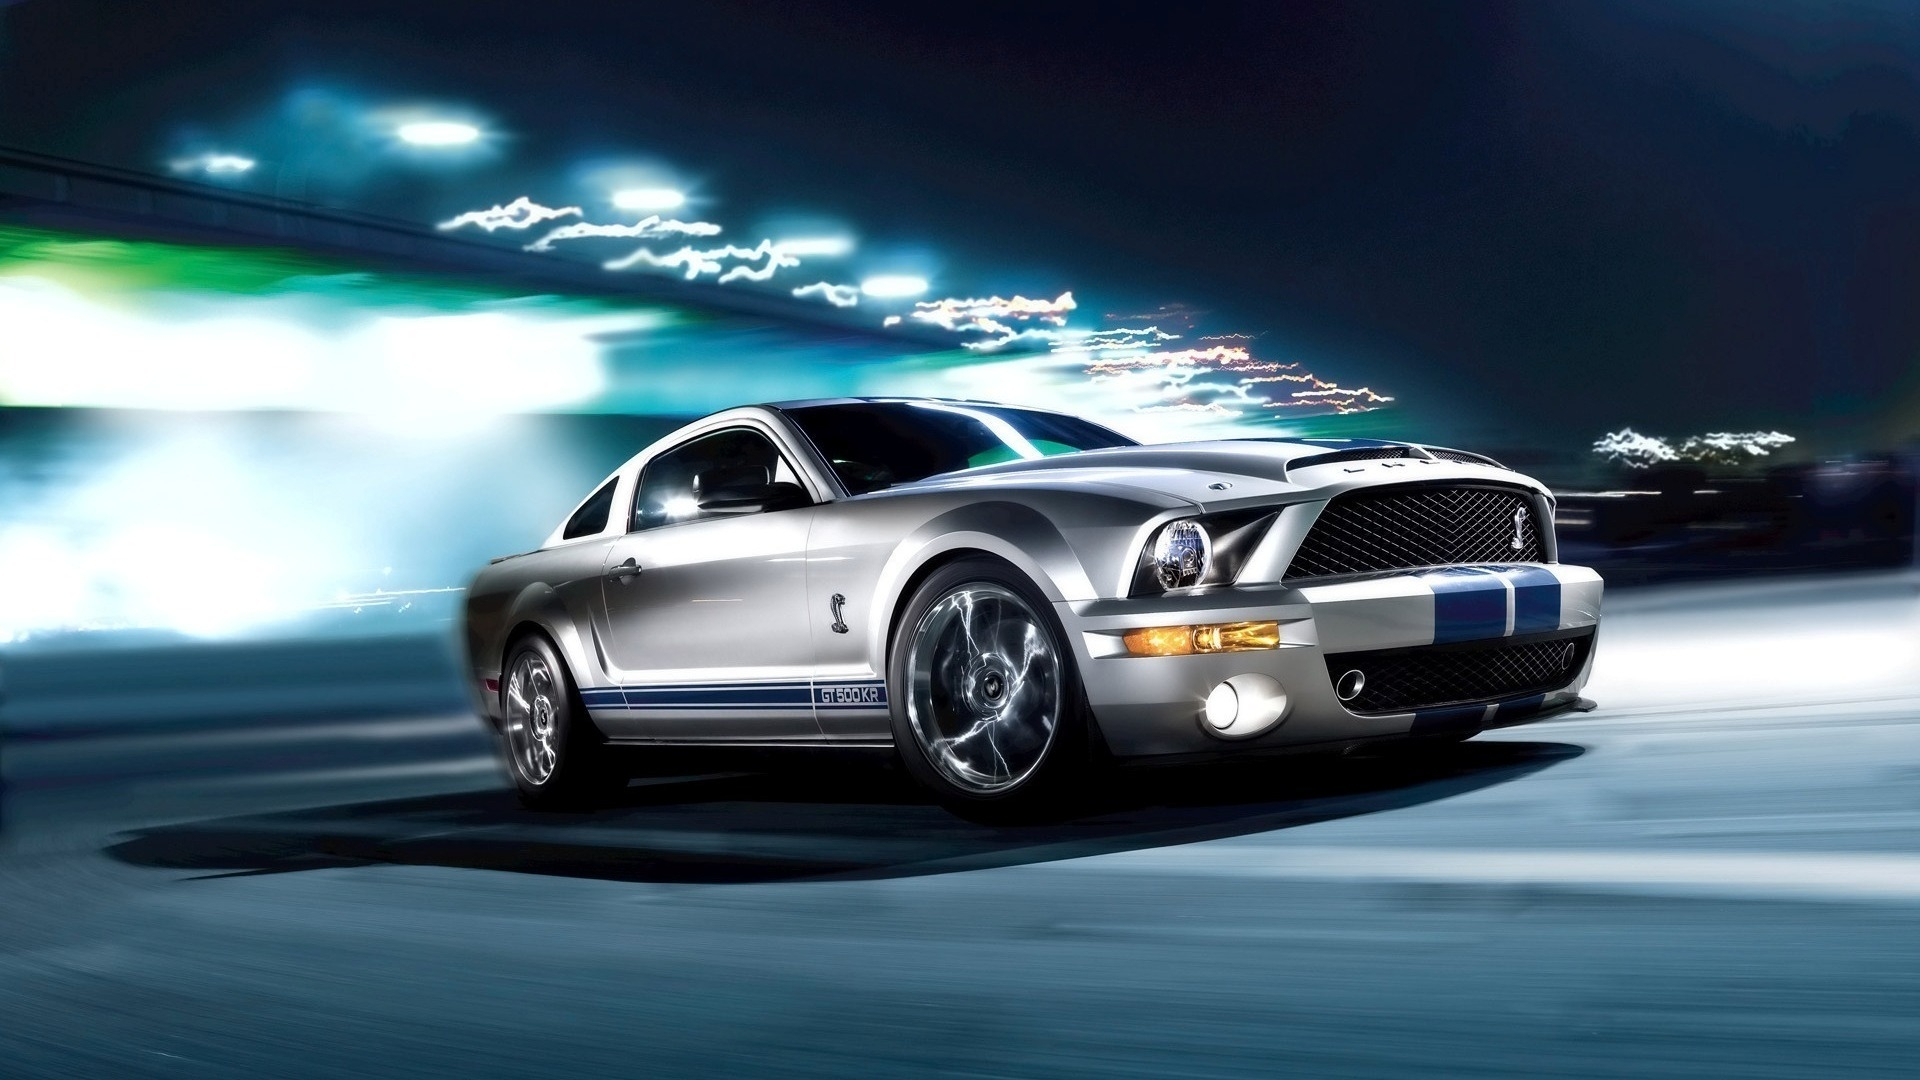 1920x1080 Ford Shelby Gt500 Desktop Pc And Mac Wallpaper